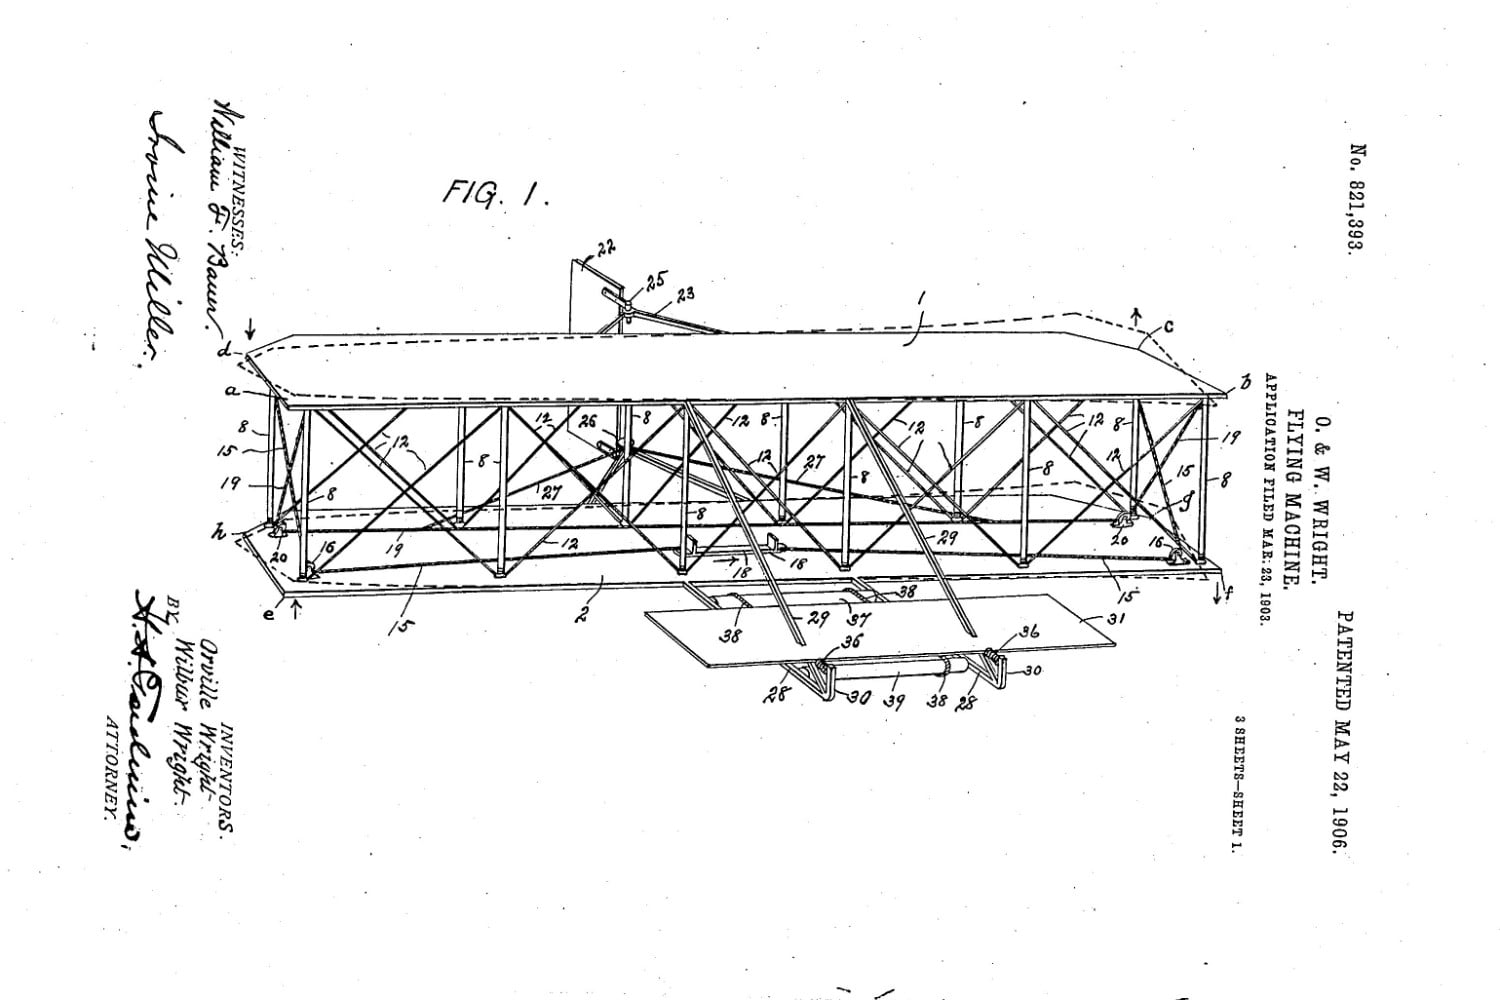 Wright Brothers Flight within the wright brothers' original 'flying machine' patent has been found